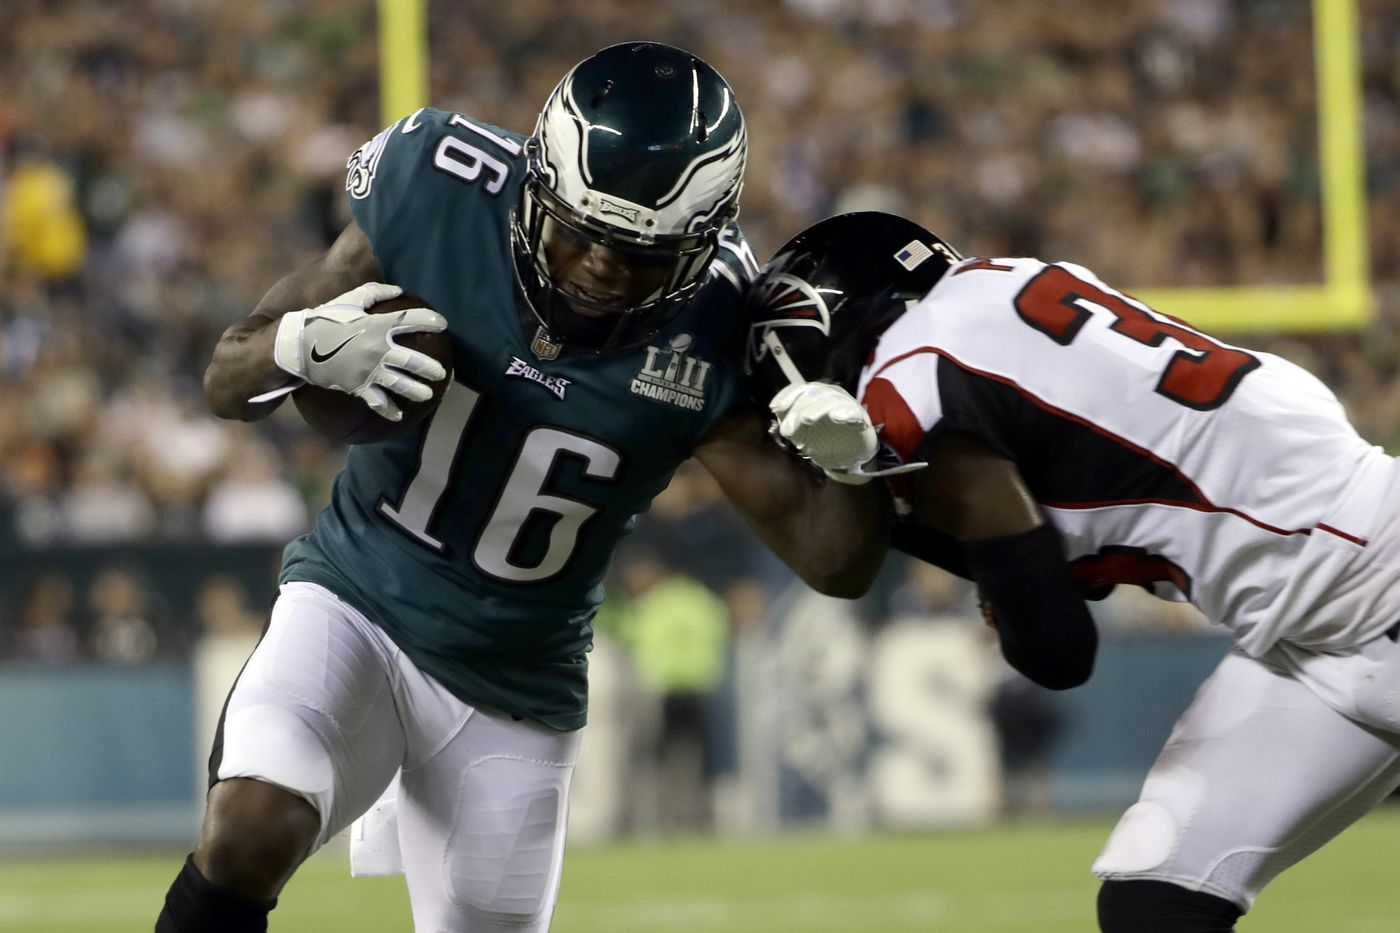 Eagles begin preparing for Tampa Bay Buccaneers after the Bucs' 48-point performance | Early Birds